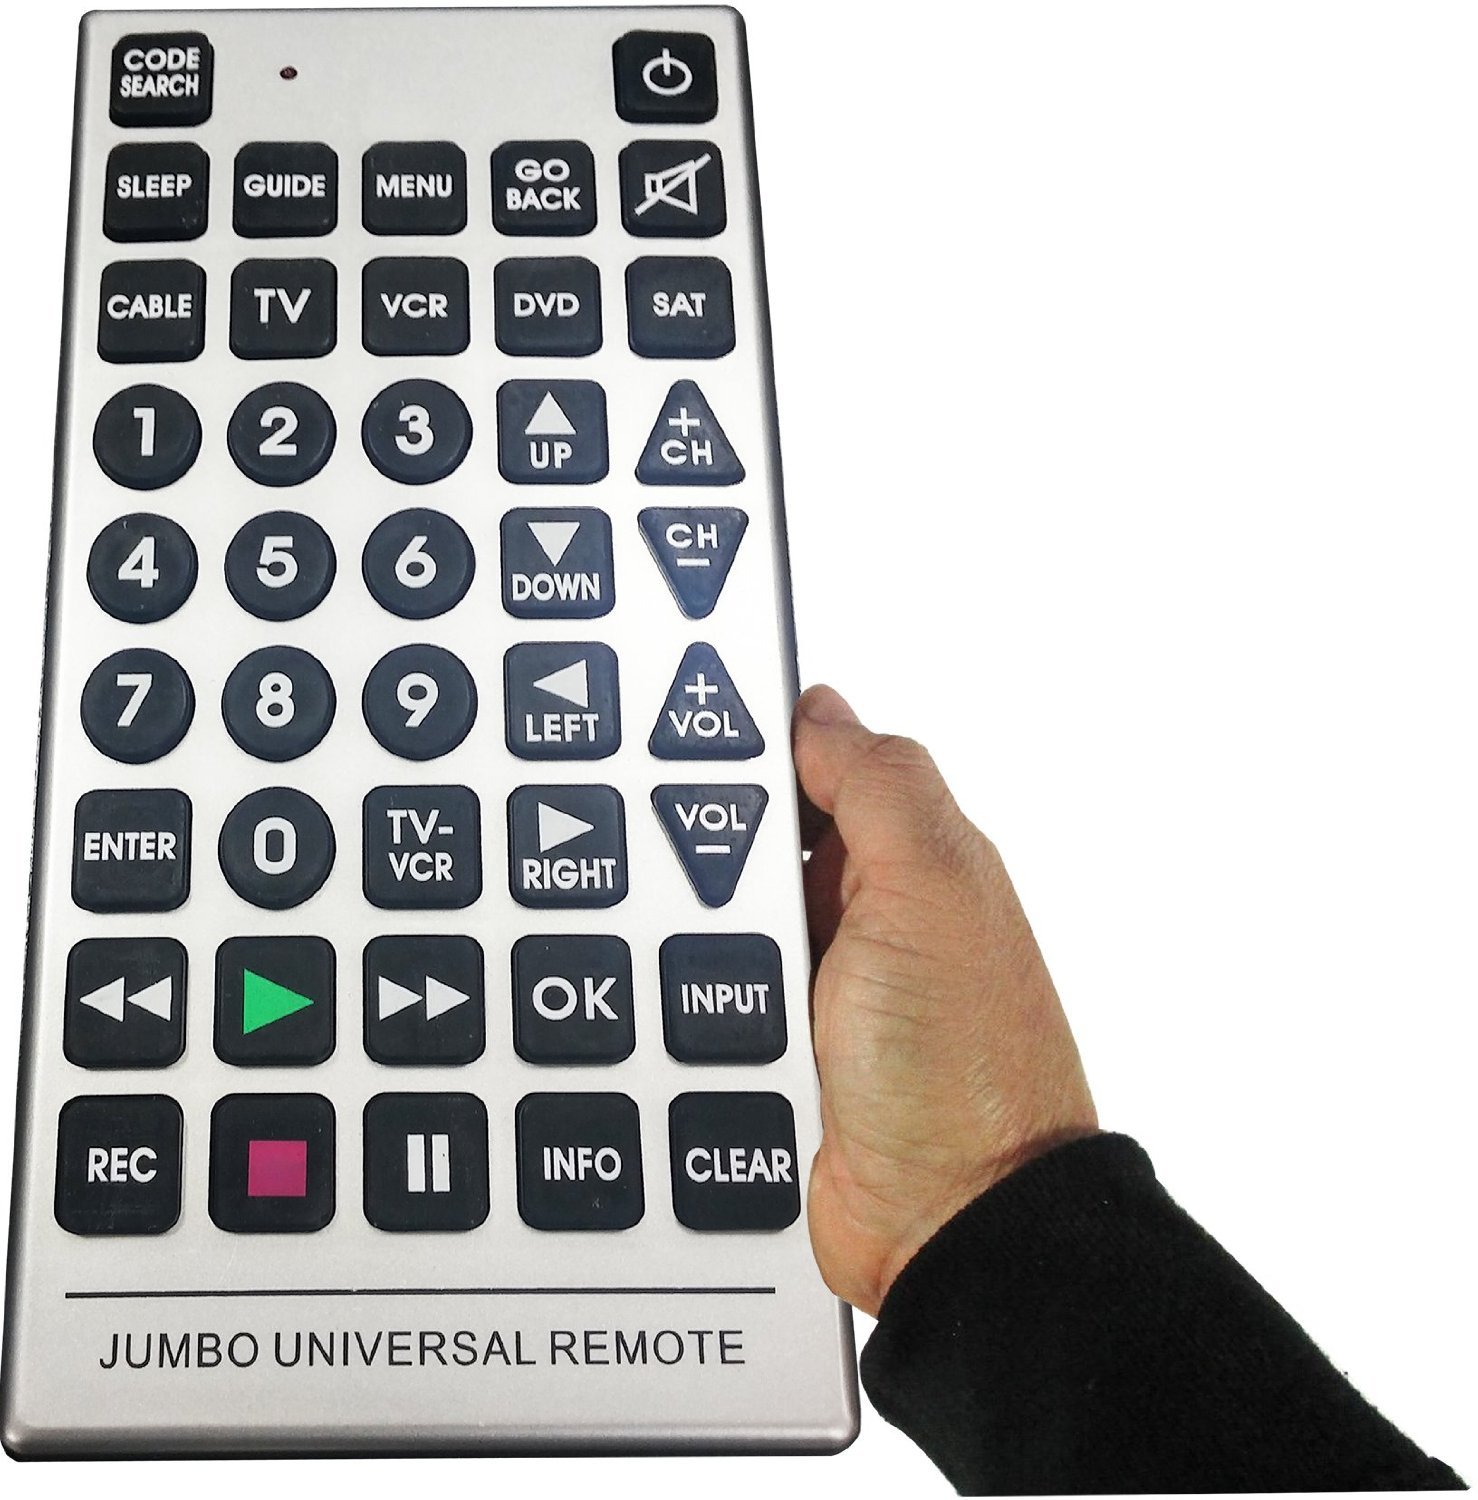 boostwaves-universal-jumbo-remote-control-budget-universal-standard-remotes-for-home-theaters